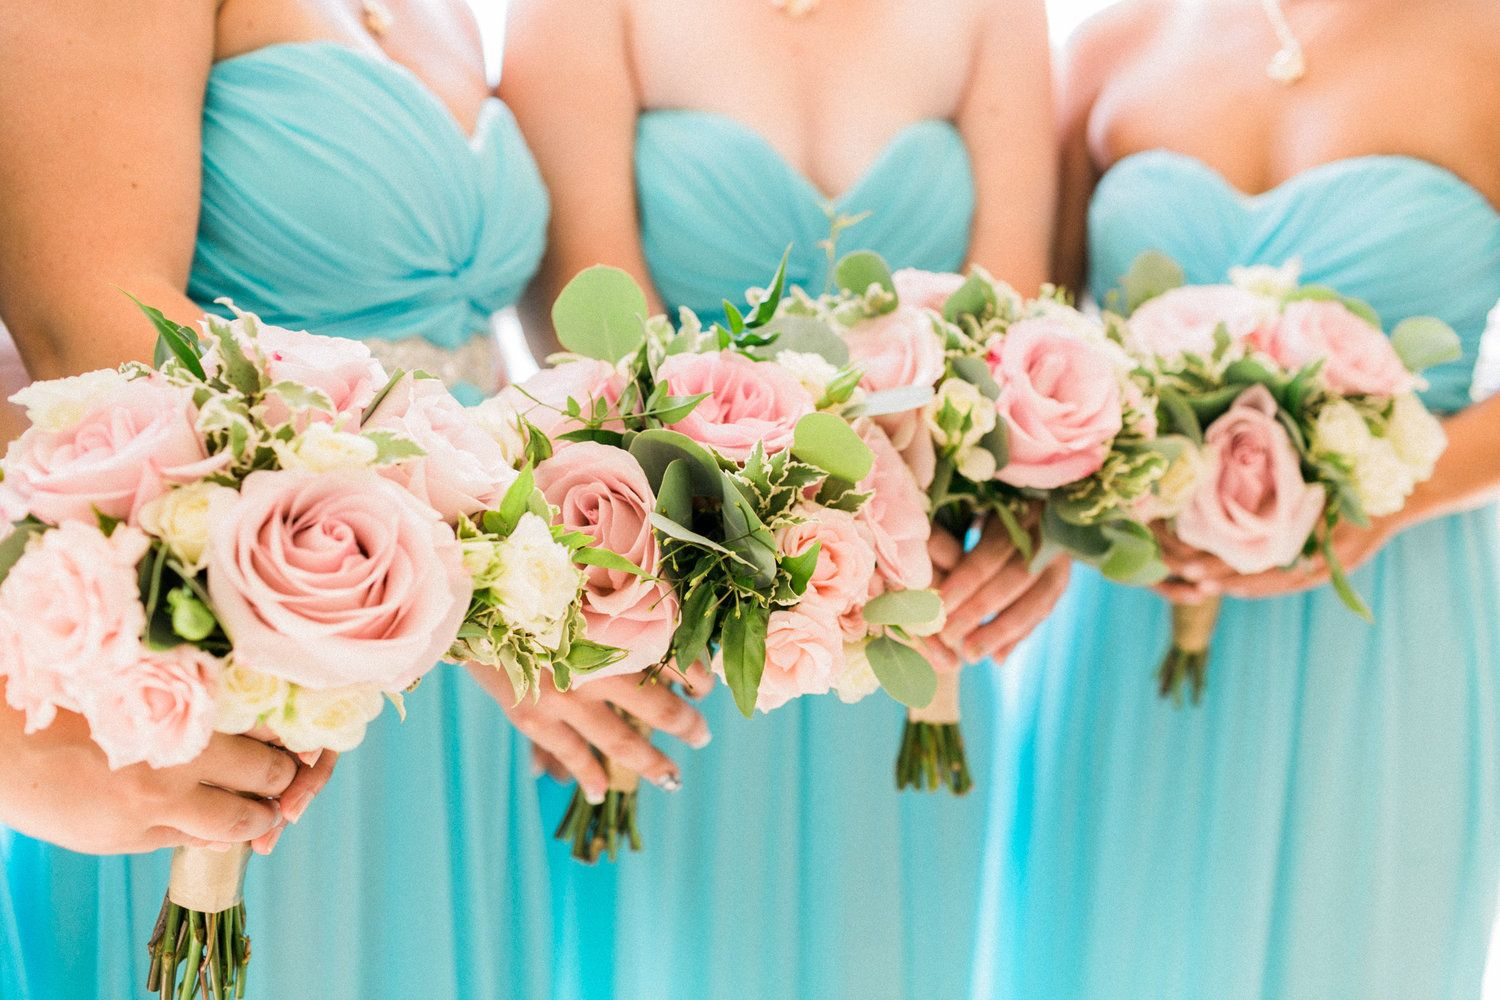 c617e9af332 Tiffany Wedding · Blue Dresses · Blue Gold Wedding · ❤  www.alexnshawncaple.com ❤ www.sweetstart.com ❤ Gorgeous bridesmaids bouquets